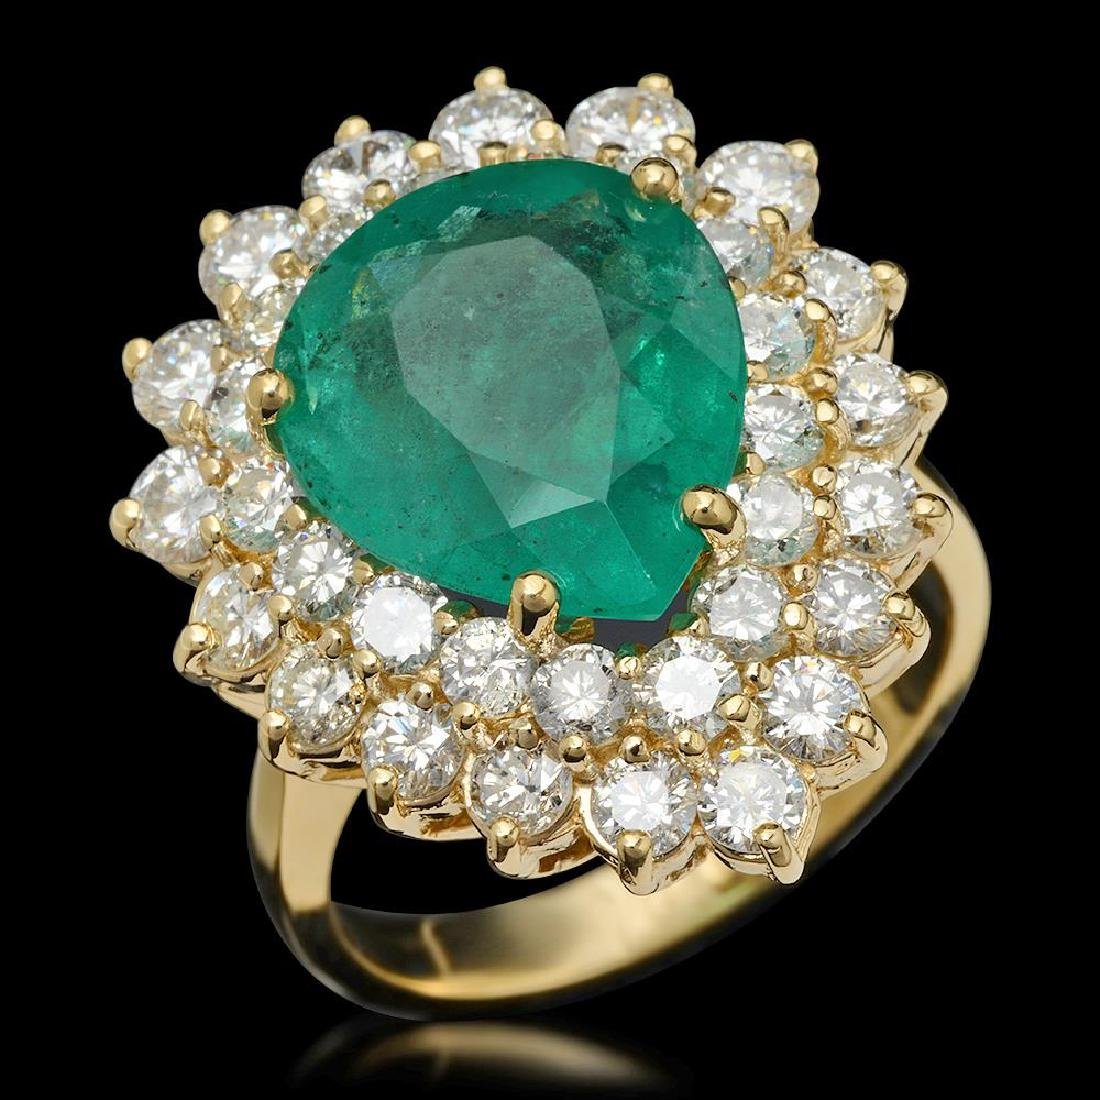 14K Gold 5.67ct Emerald & 2.87ct Diamond Ring